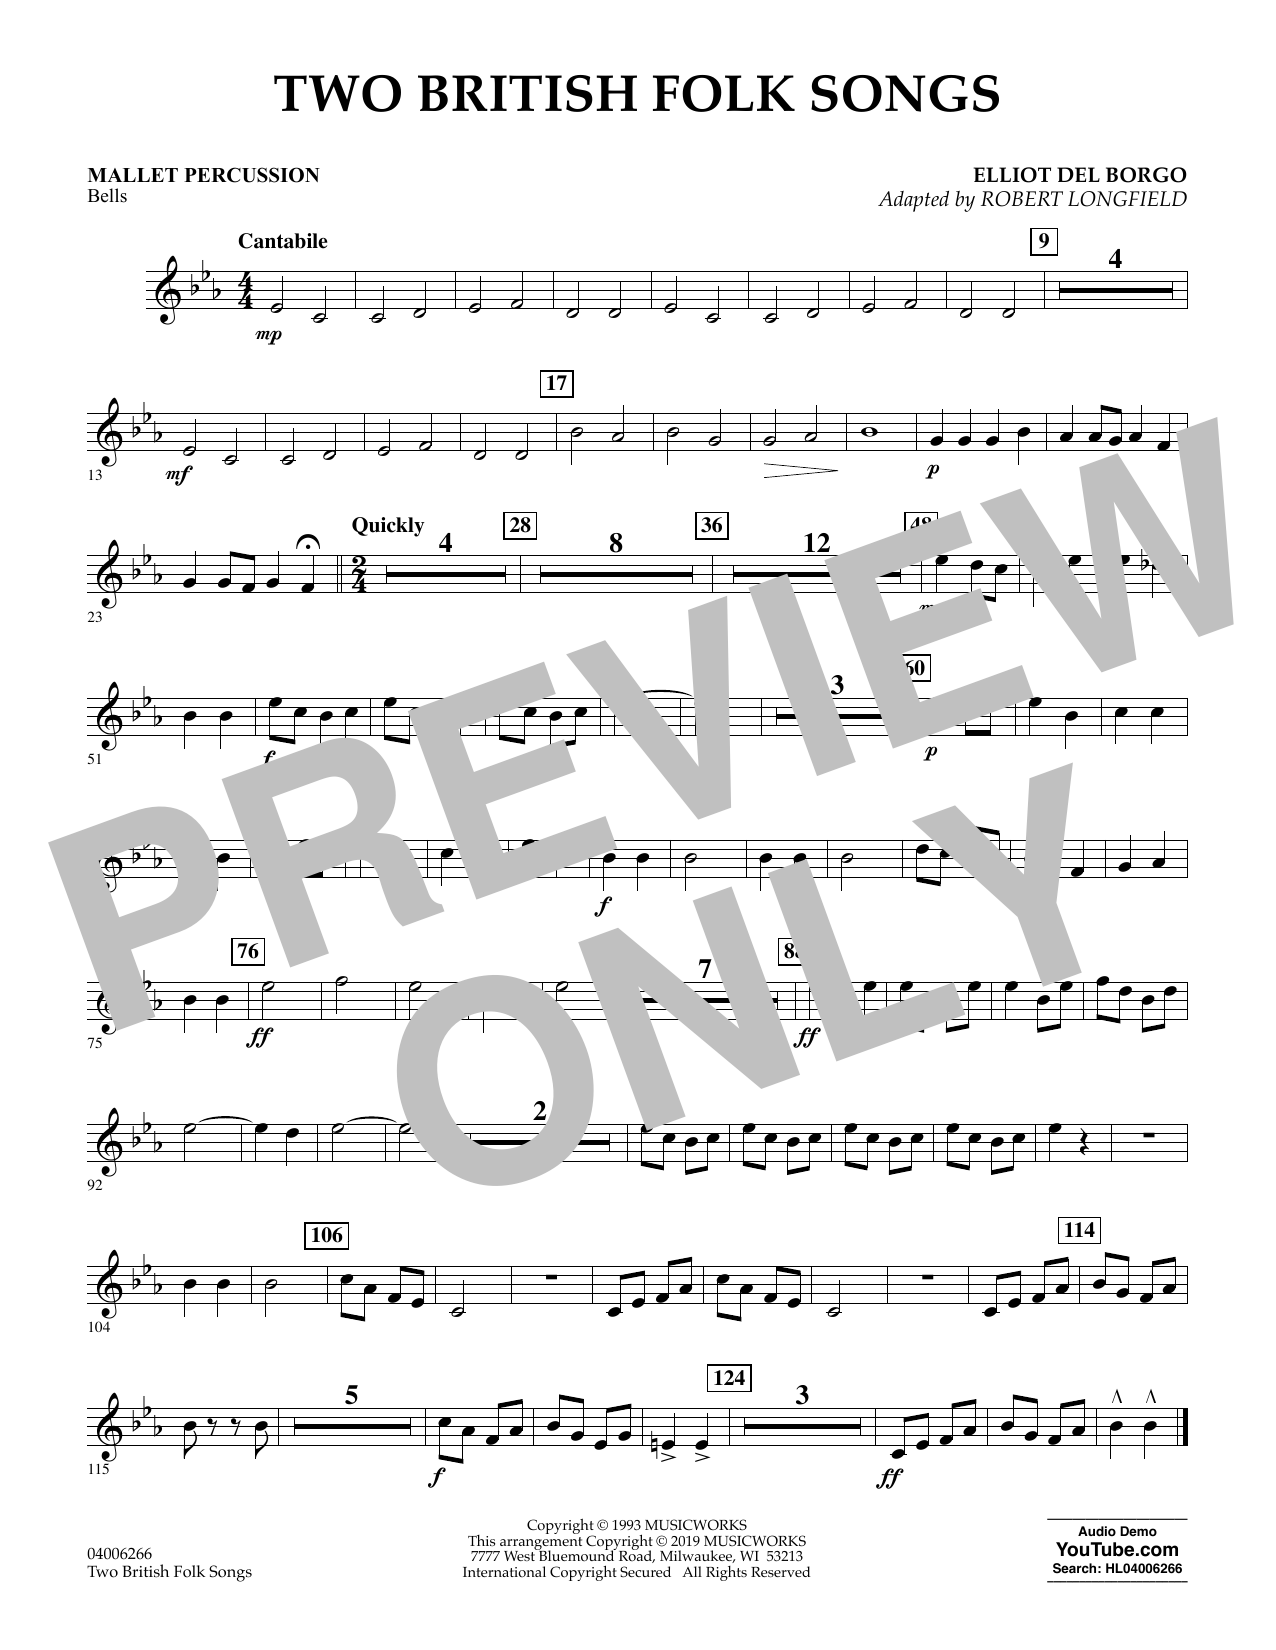 Two British Folk Songs (arr. Robert Longfield) - Mallet Percussion (Concert Band)